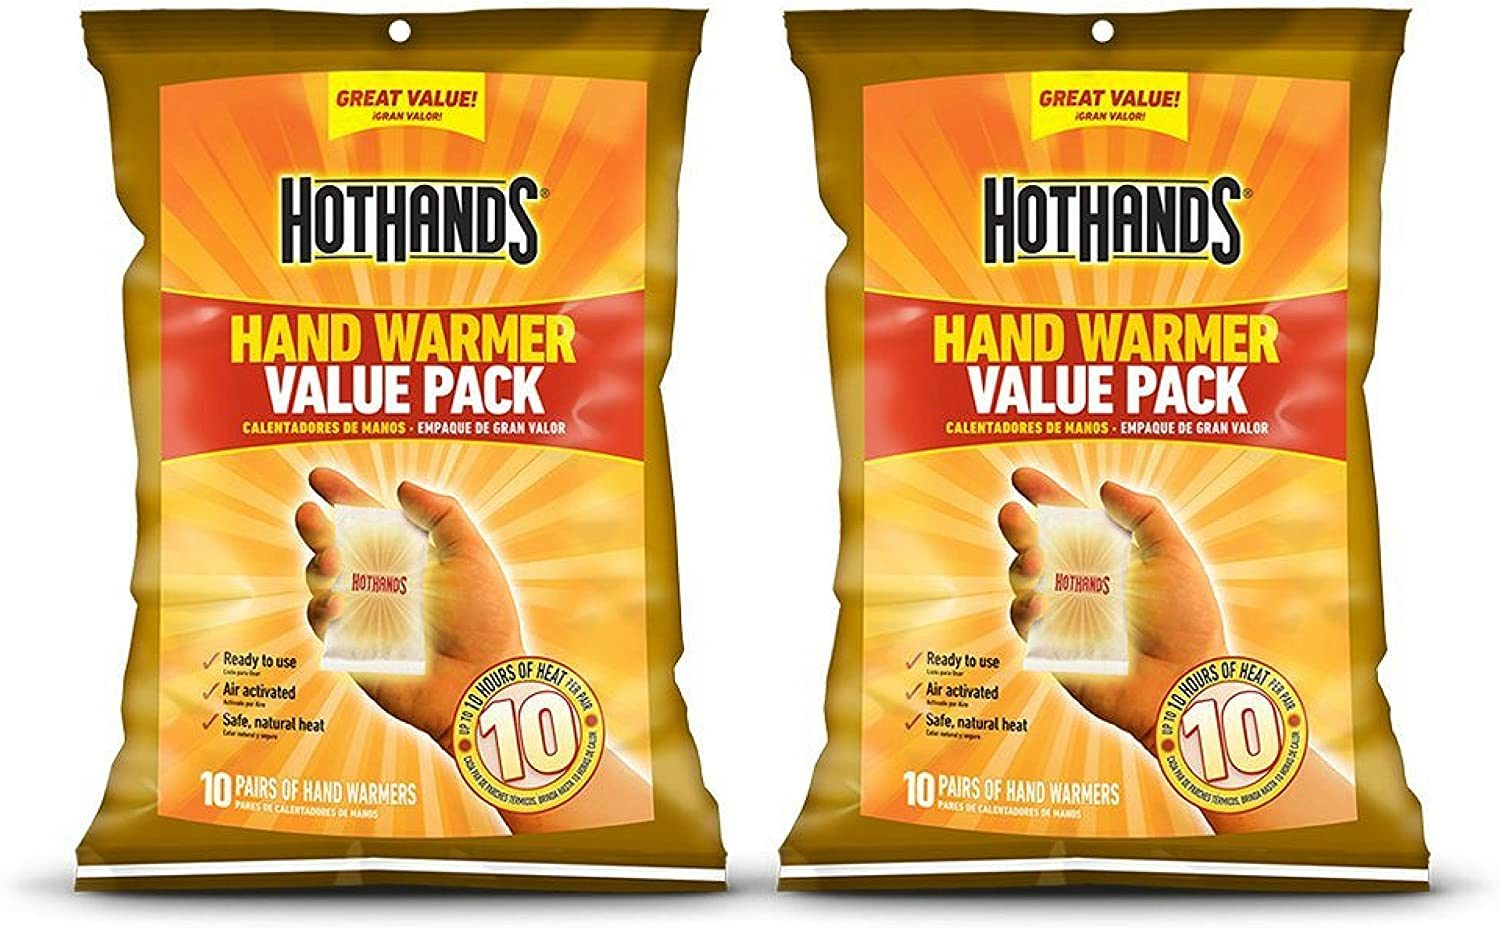 HotHands Hand Warmers - Long Lasting Safe Natural Odorless Air Activated Warmers - Up to 10 Hours of Heat - 20 Pair Value Pack: Sports & Outdoors